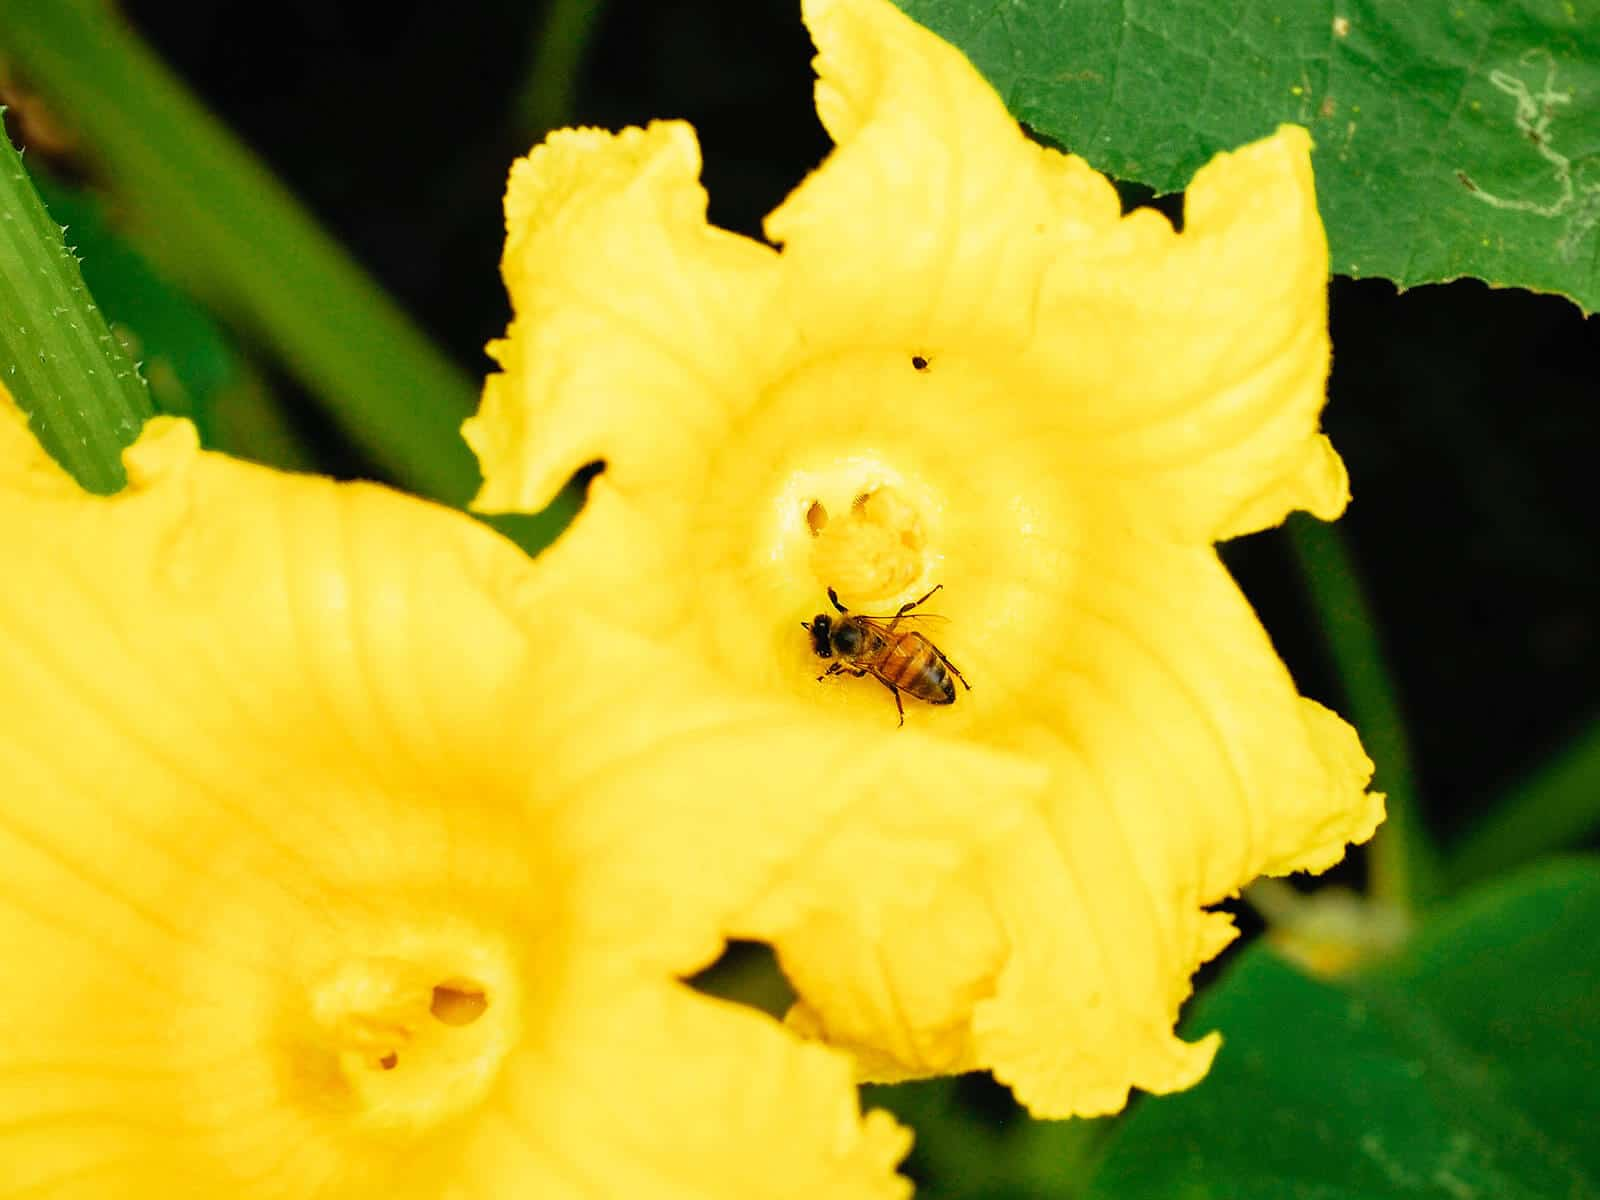 Bee landing inside an open male squash blossom